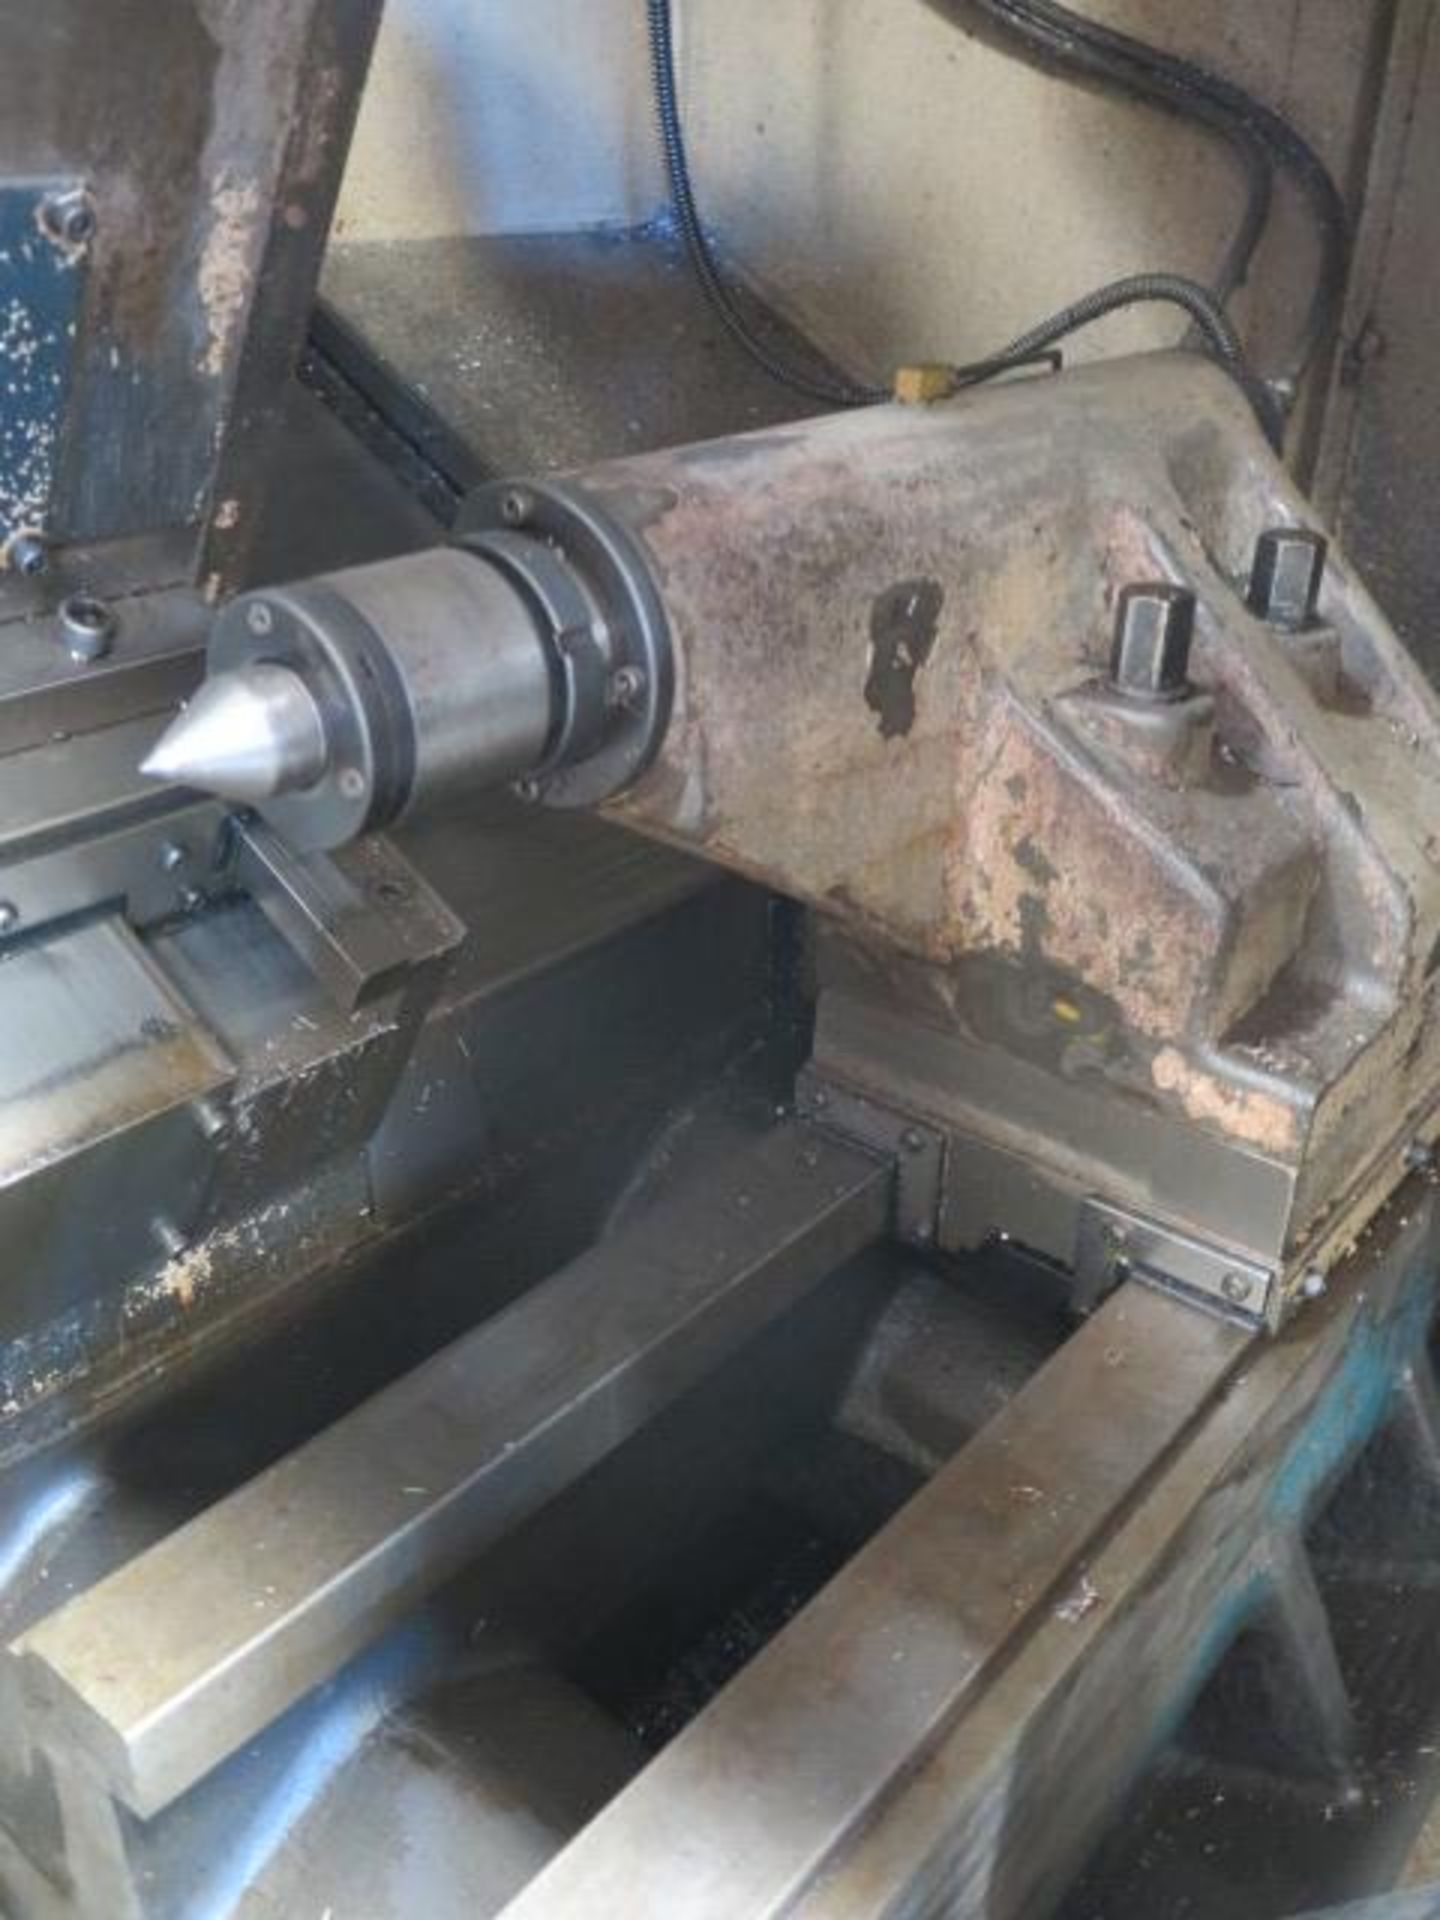 1996 Daewoo PUMA 8S CNC Turning Center s/n PM8S0500 w/ Mits Controls, Tool Presetter, SOLD AS IS - Image 9 of 14